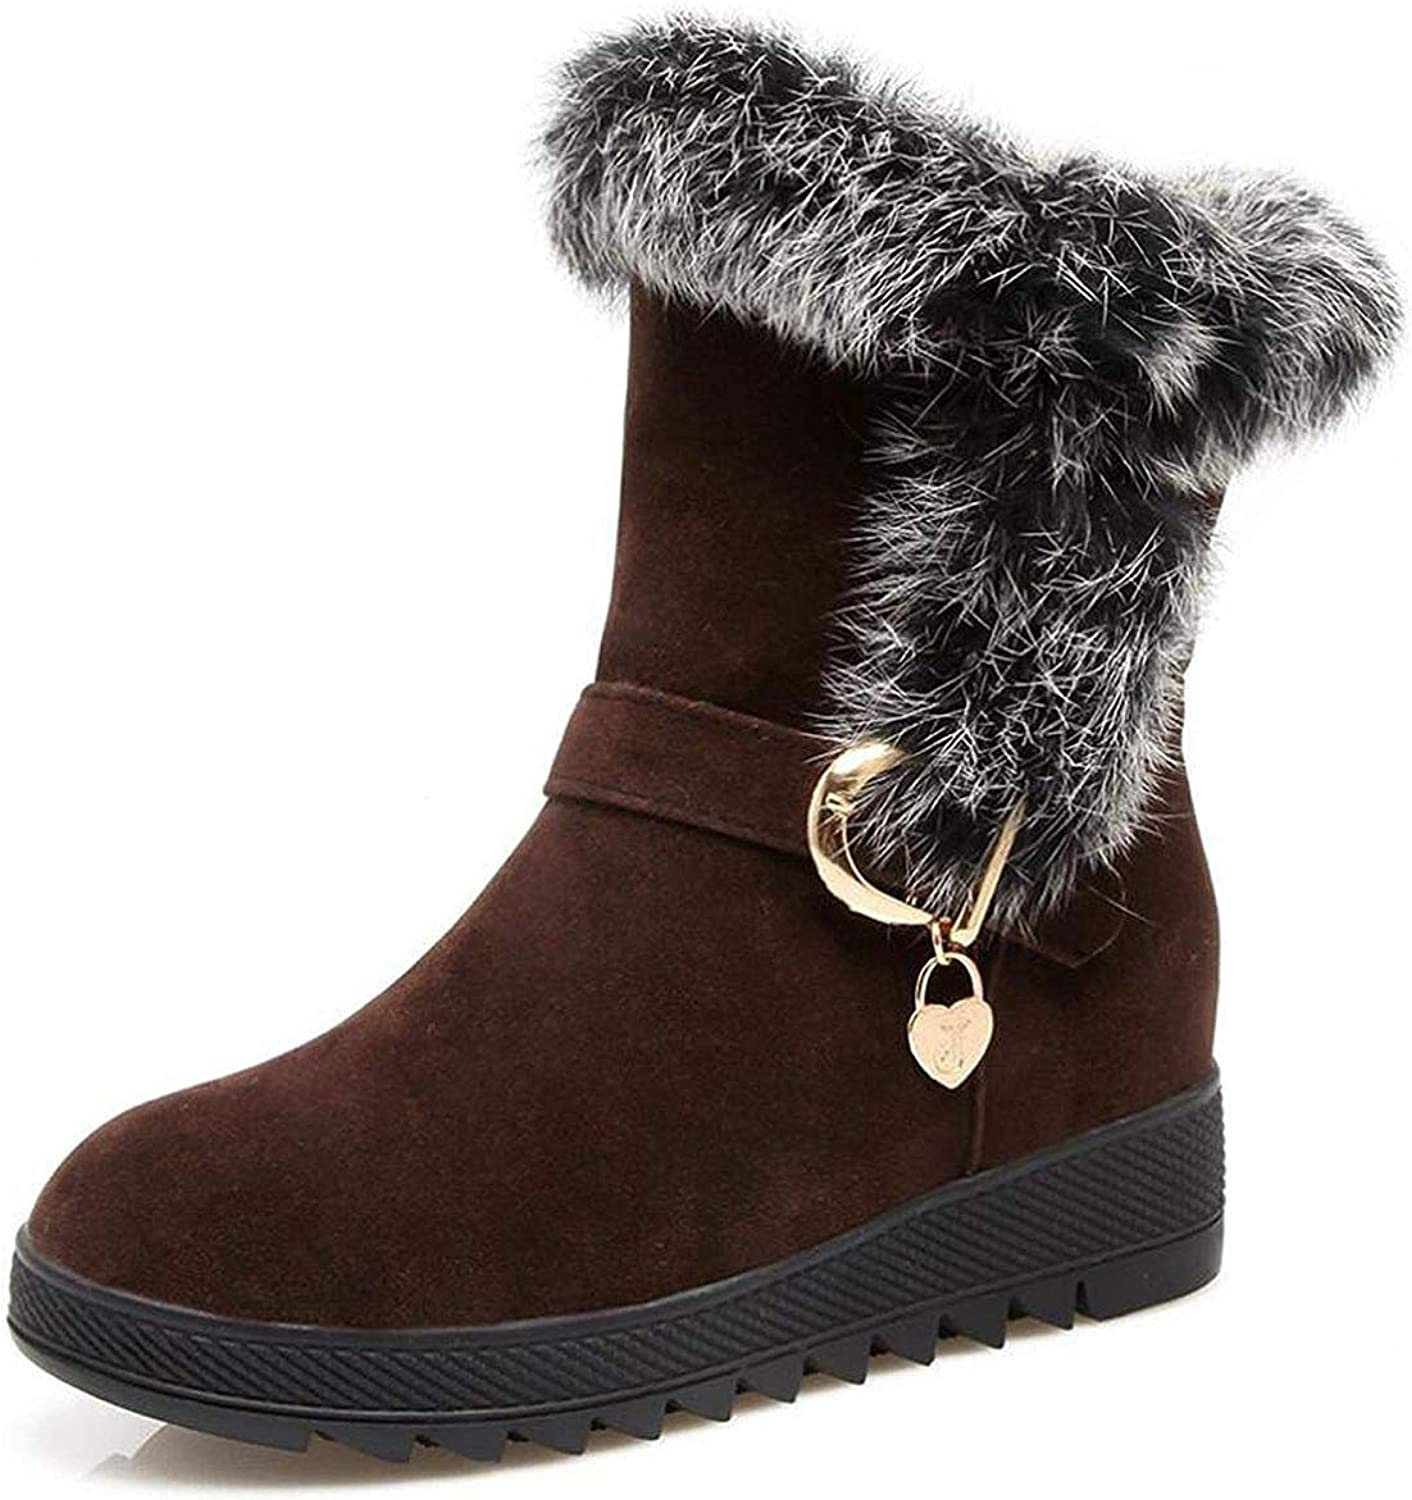 Fashion Winter Natural Rabbit Hair Snow Boots Woman Warm Flat Mid Suede Leather Short Boots